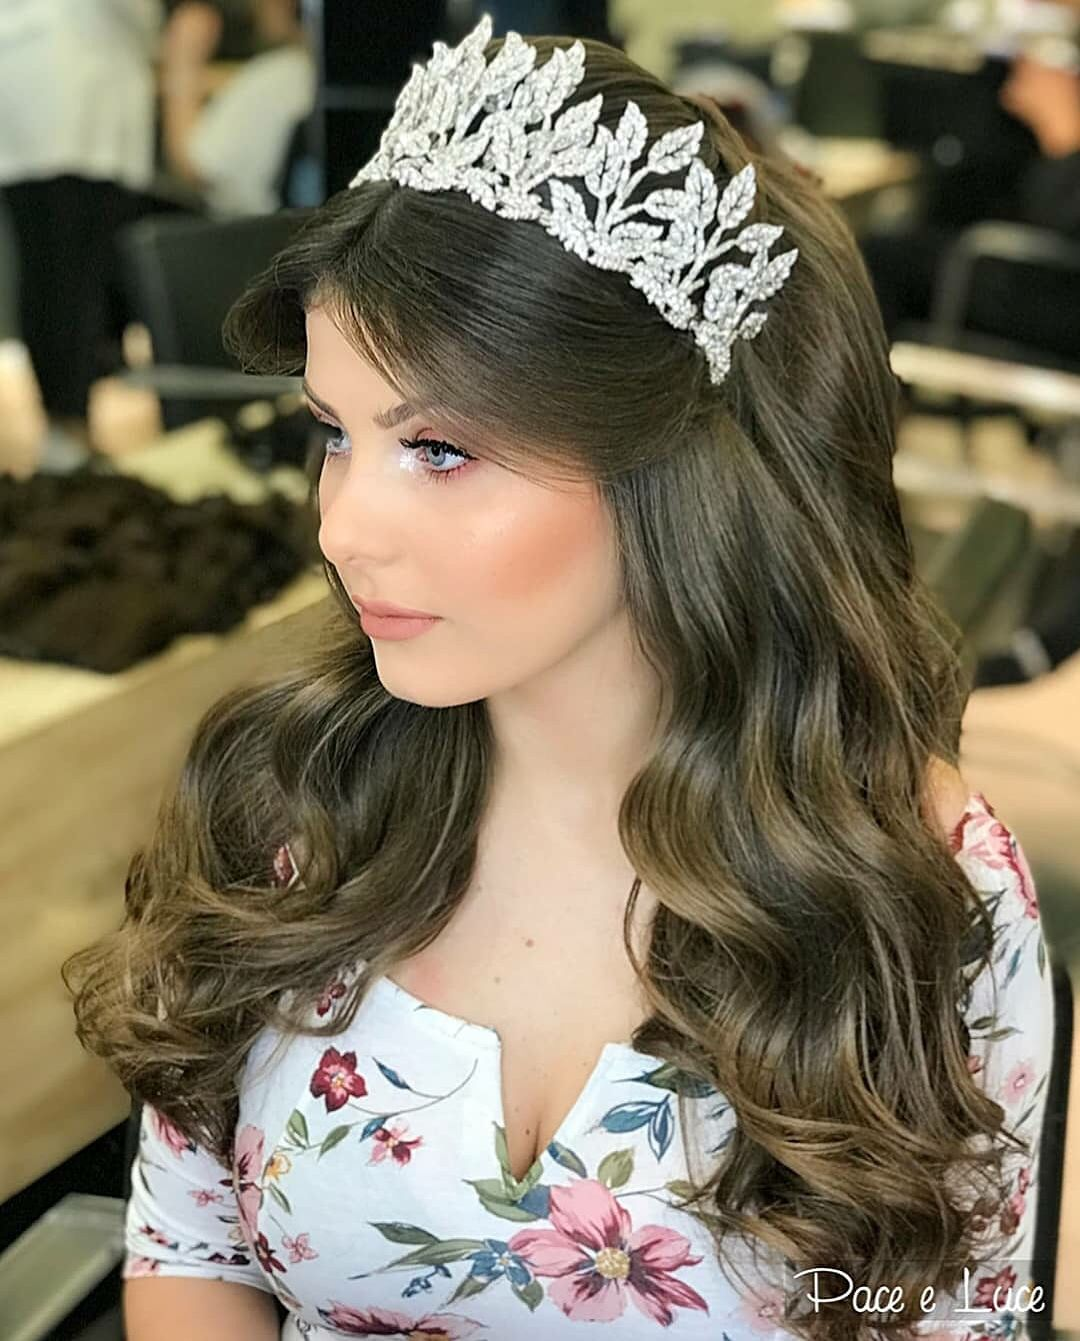 Pin By Roofyyy On فرحي Hair Styles Bride Hairstyles Beautiful Hair